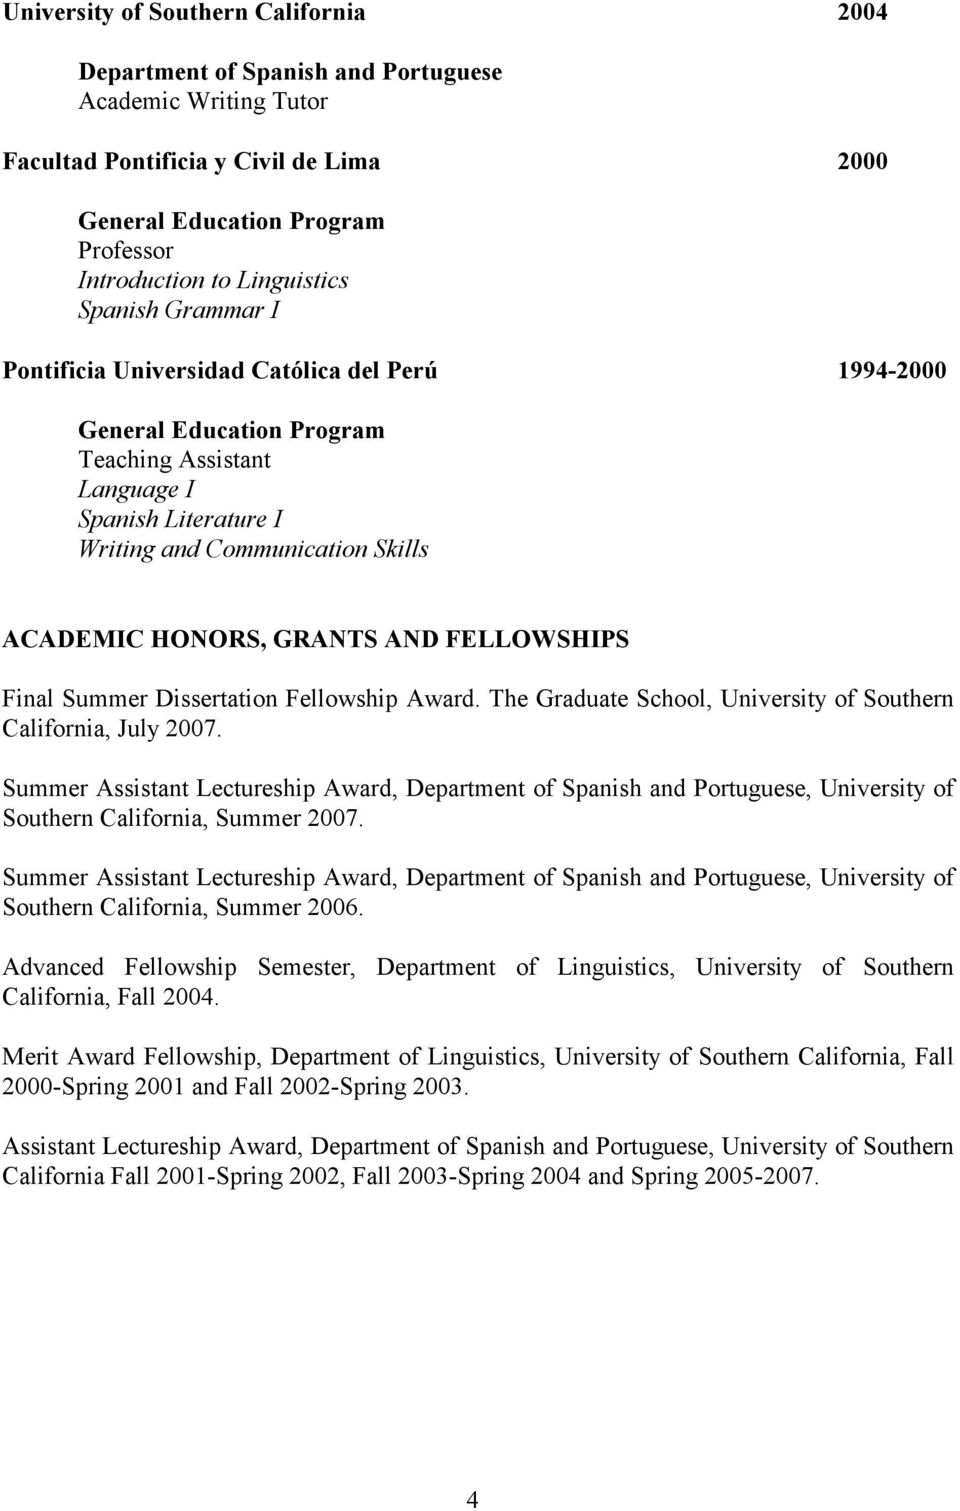 HONORS, GRANTS AND FELLOWSHIPS Final Summer Dissertation Fellowship Award. The Graduate School, University of Southern California, July 2007.